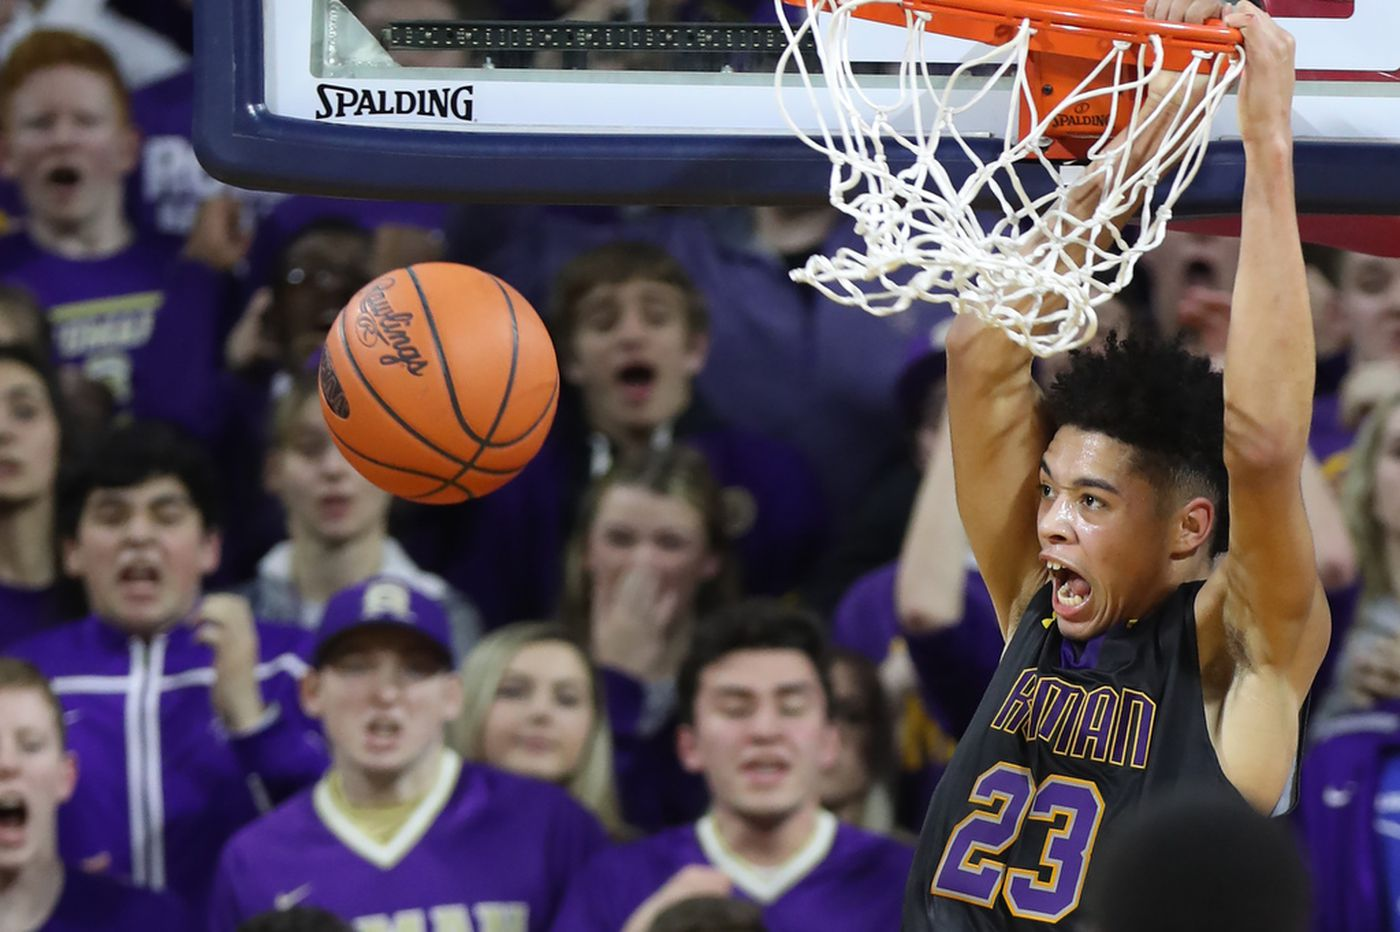 Saturday's Southeastern Pa. roundup: Seth Lundy's double-double powers Roman Catholic past Archbishop Carroll (Md.)